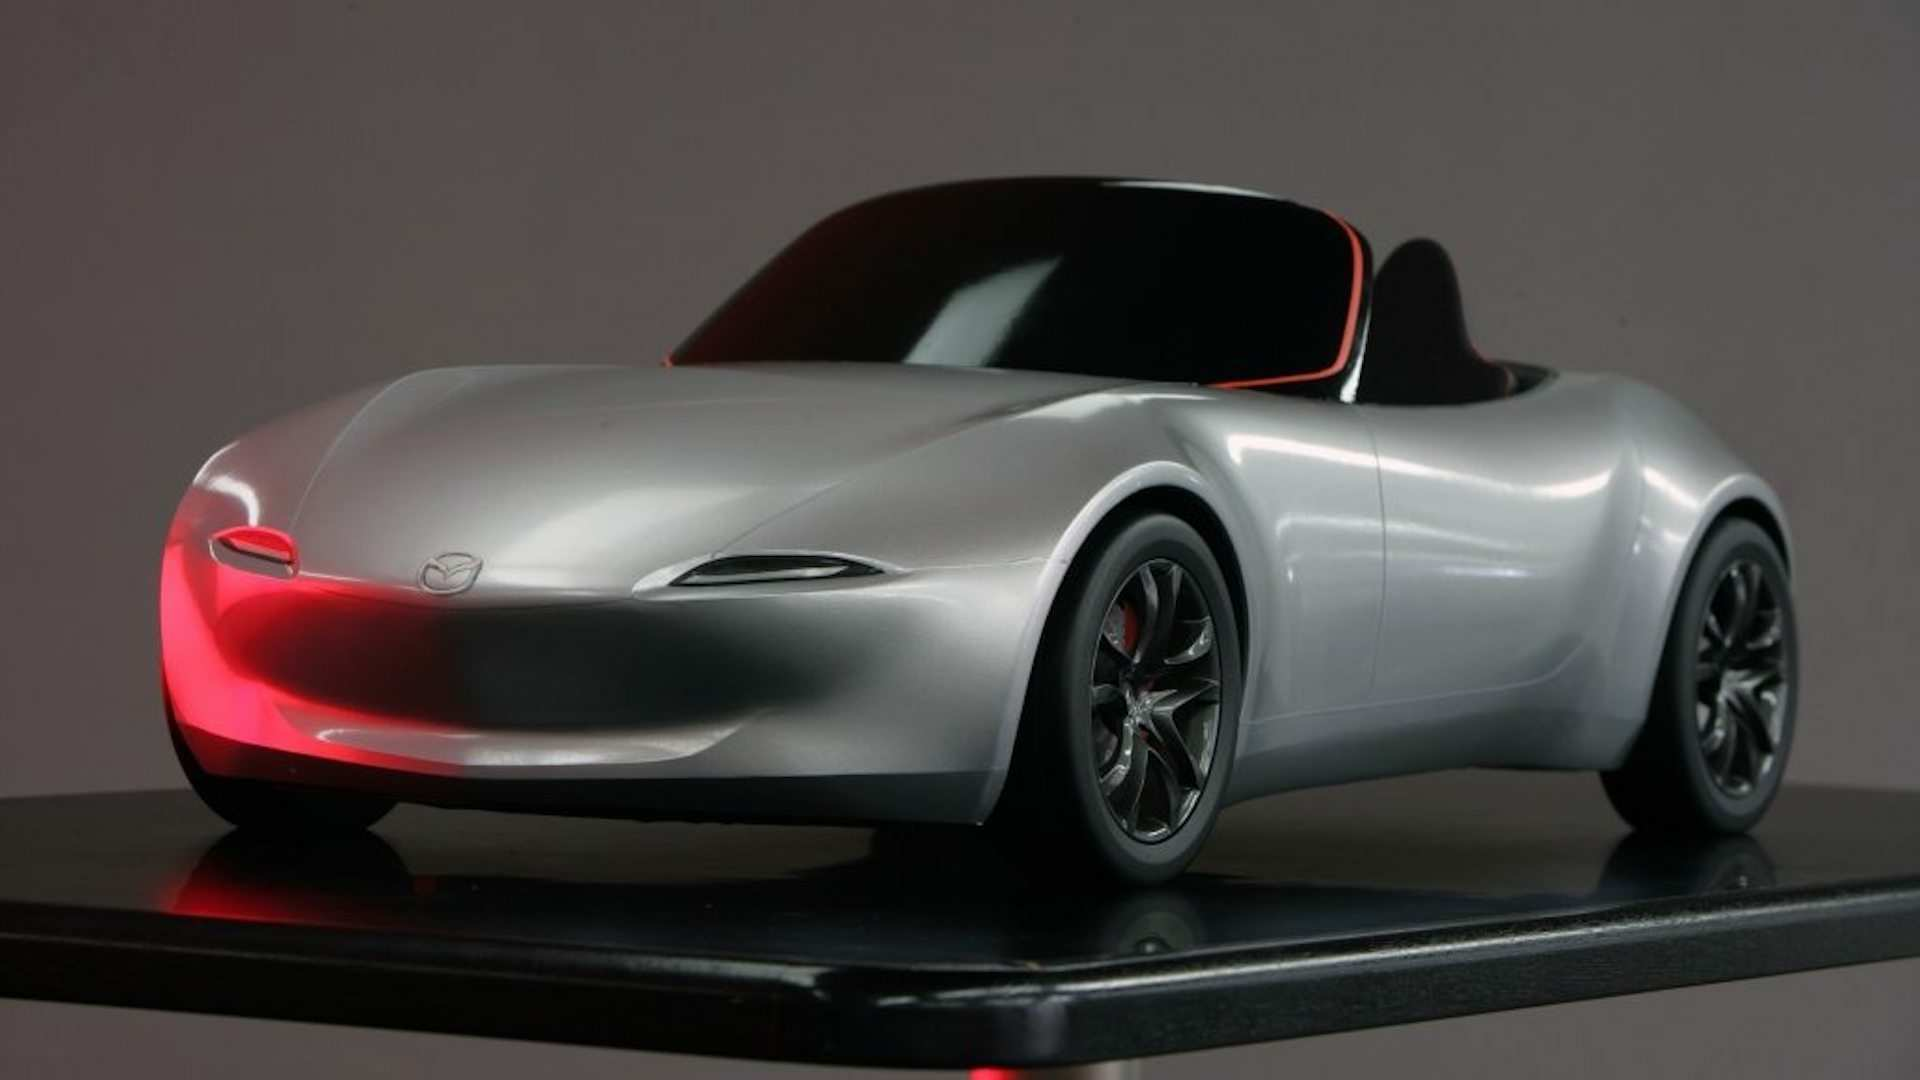 41 All New Mazda Mx 5 2020 Wallpaper